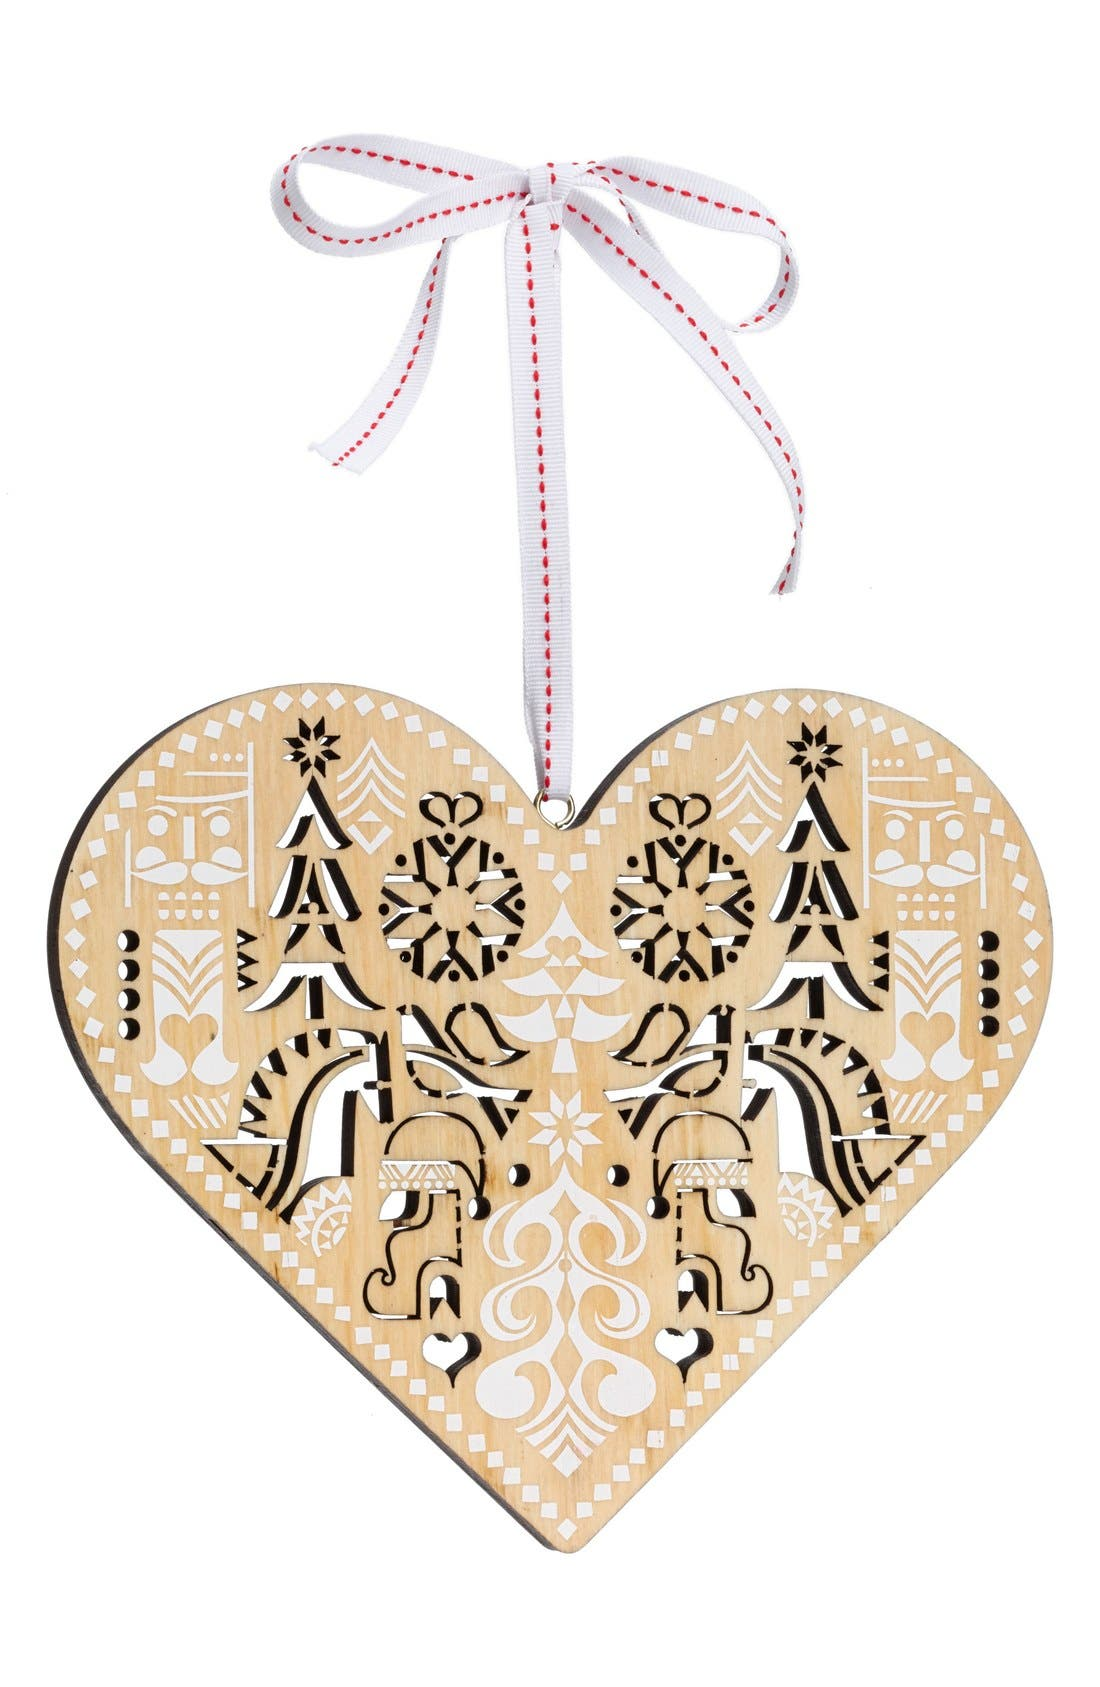 Nordstrom at Home Wooden Heart Ornament